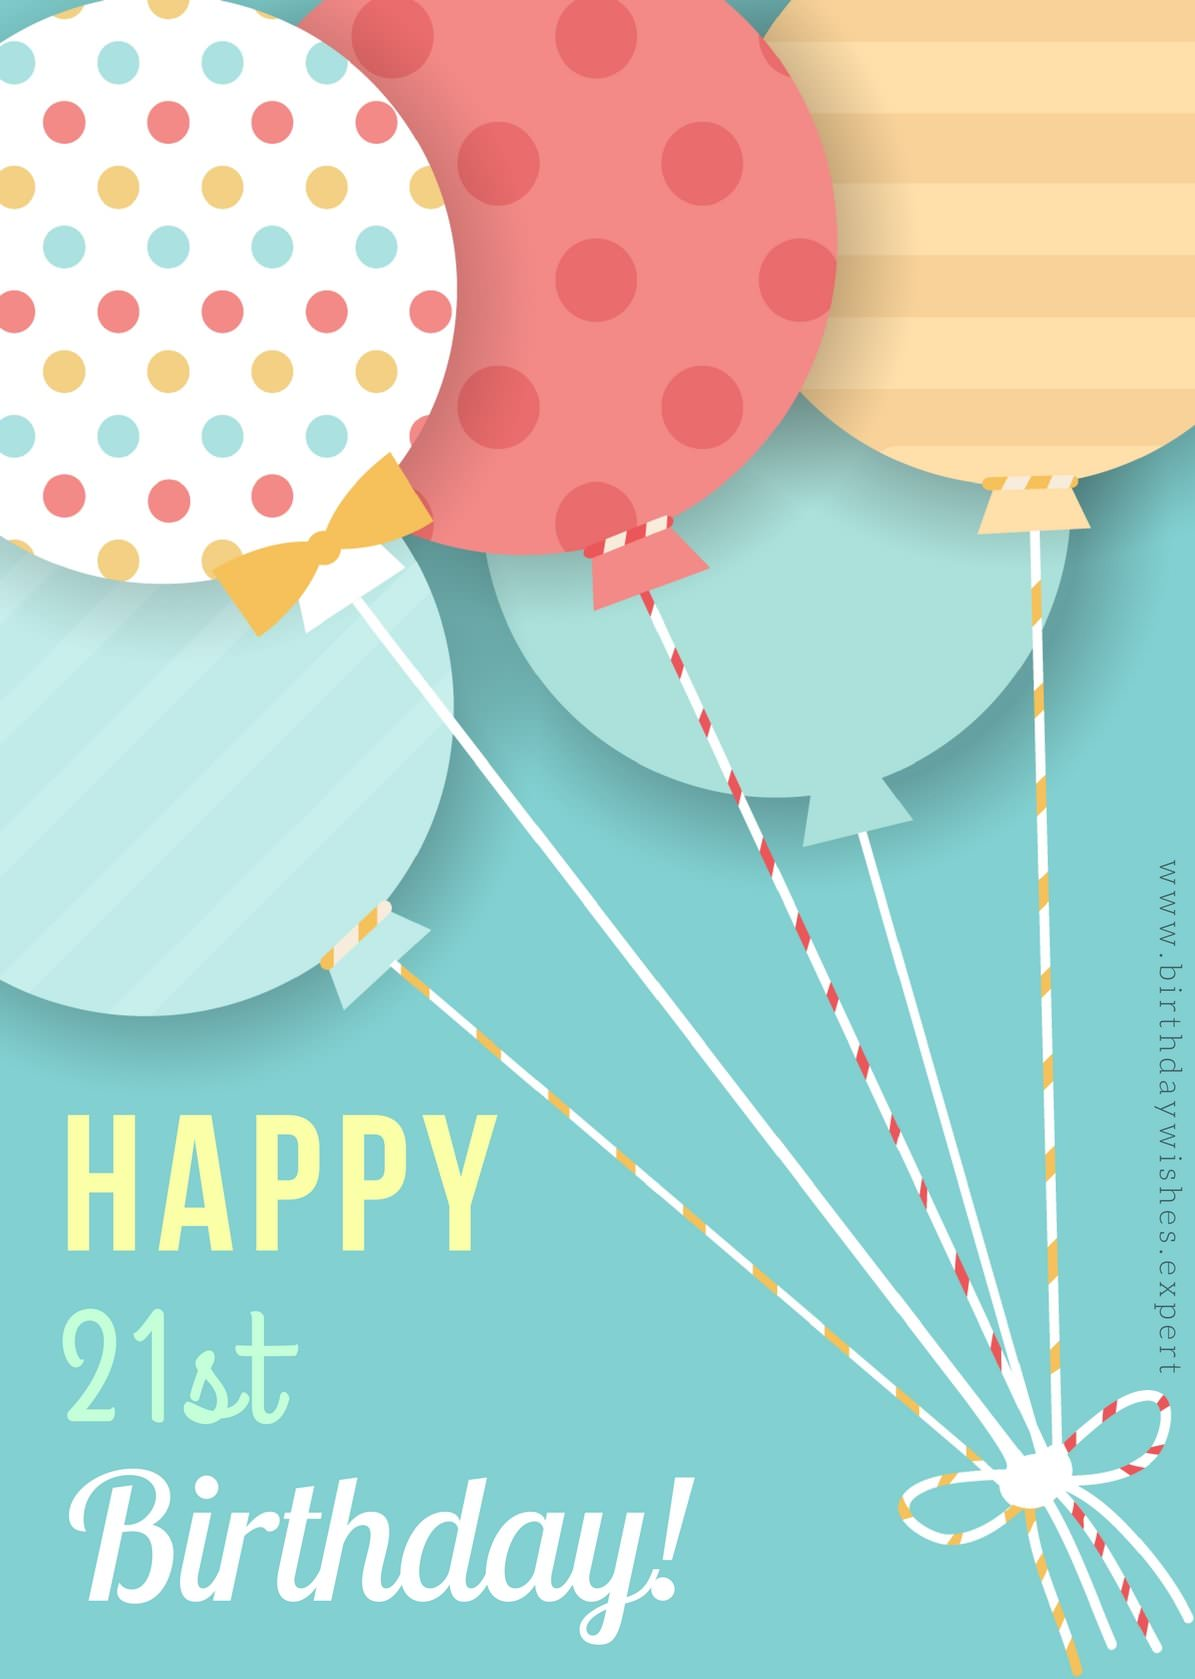 happy 21st birthday images for her ; Happy-21st-Birthday-wish-on-image-with-colorful-balloons